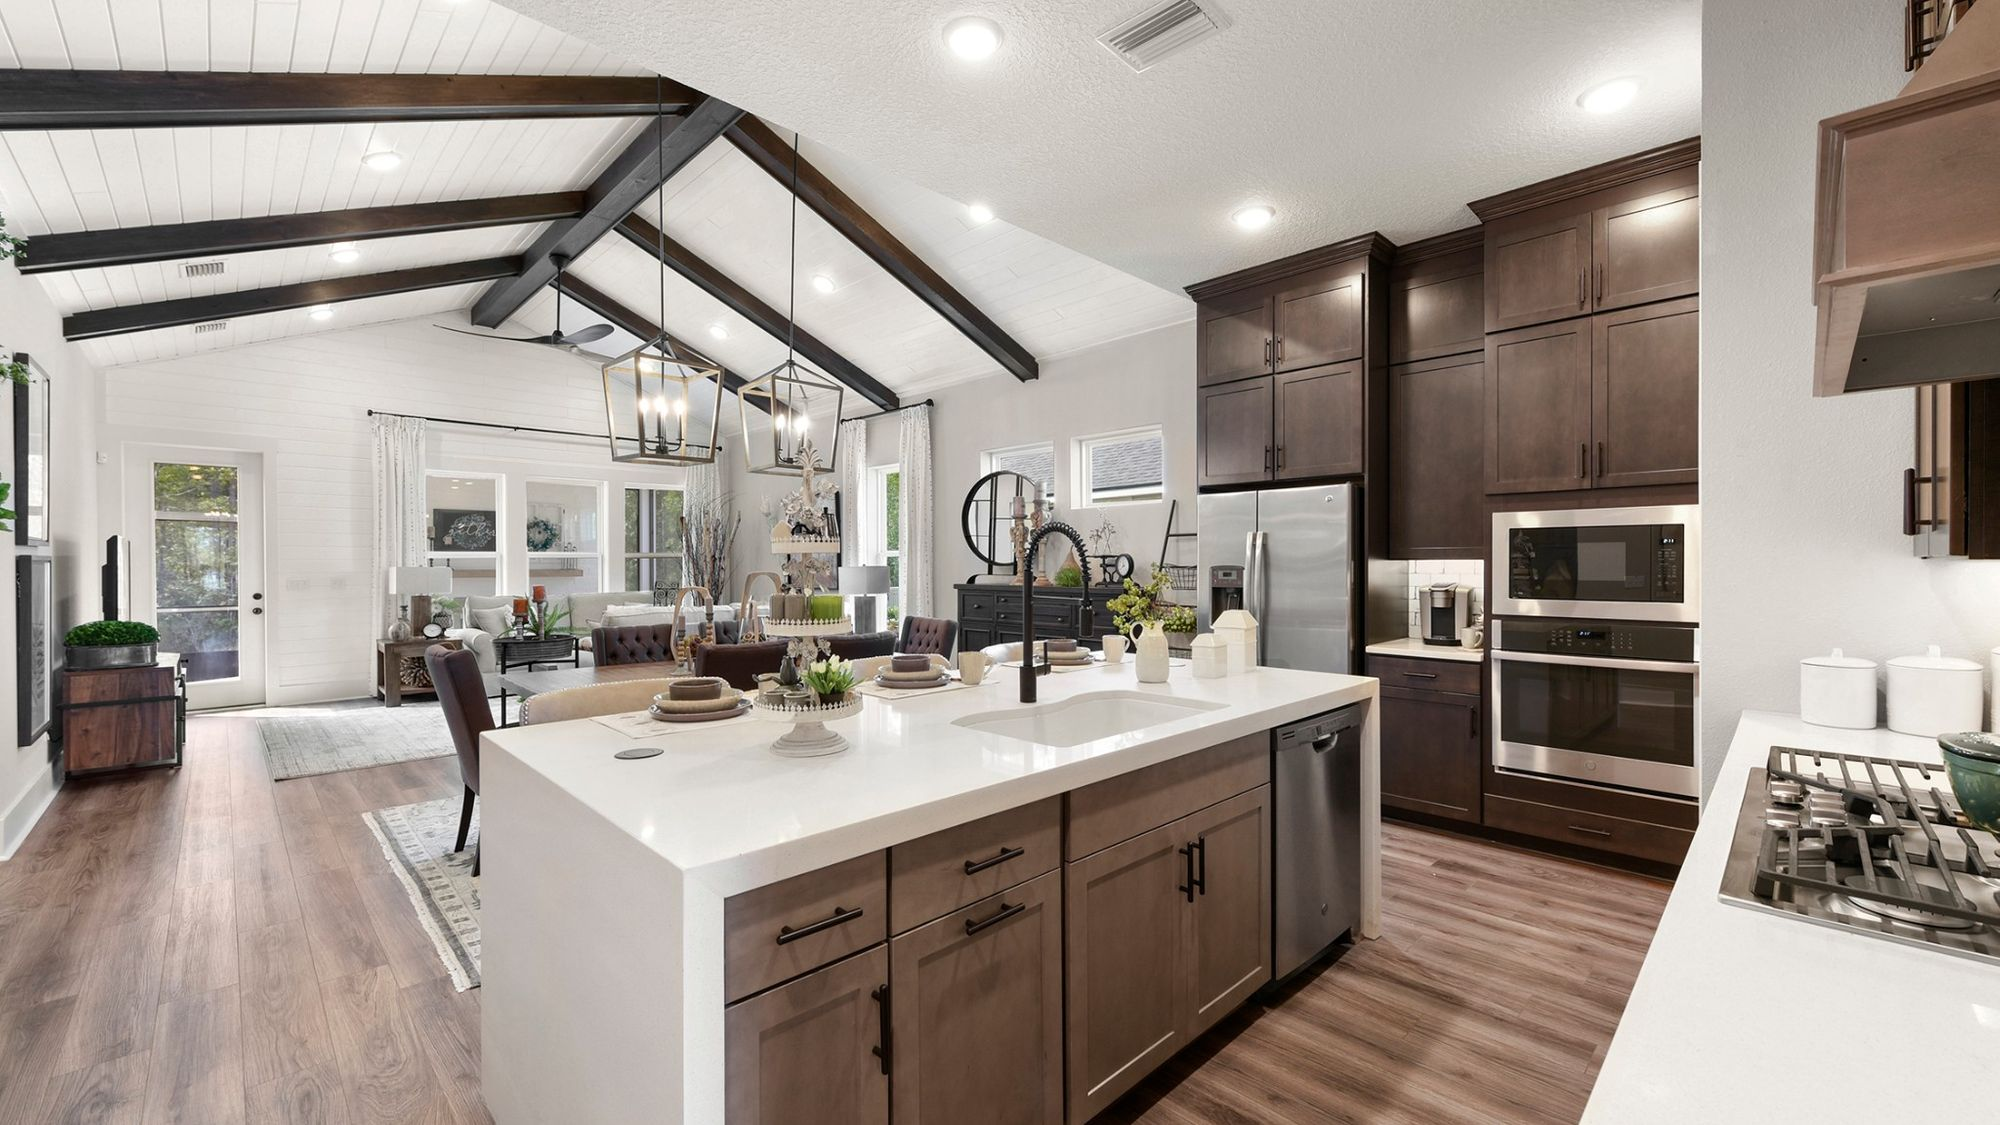 model homes, builder packages, new homes, cabinets, counters